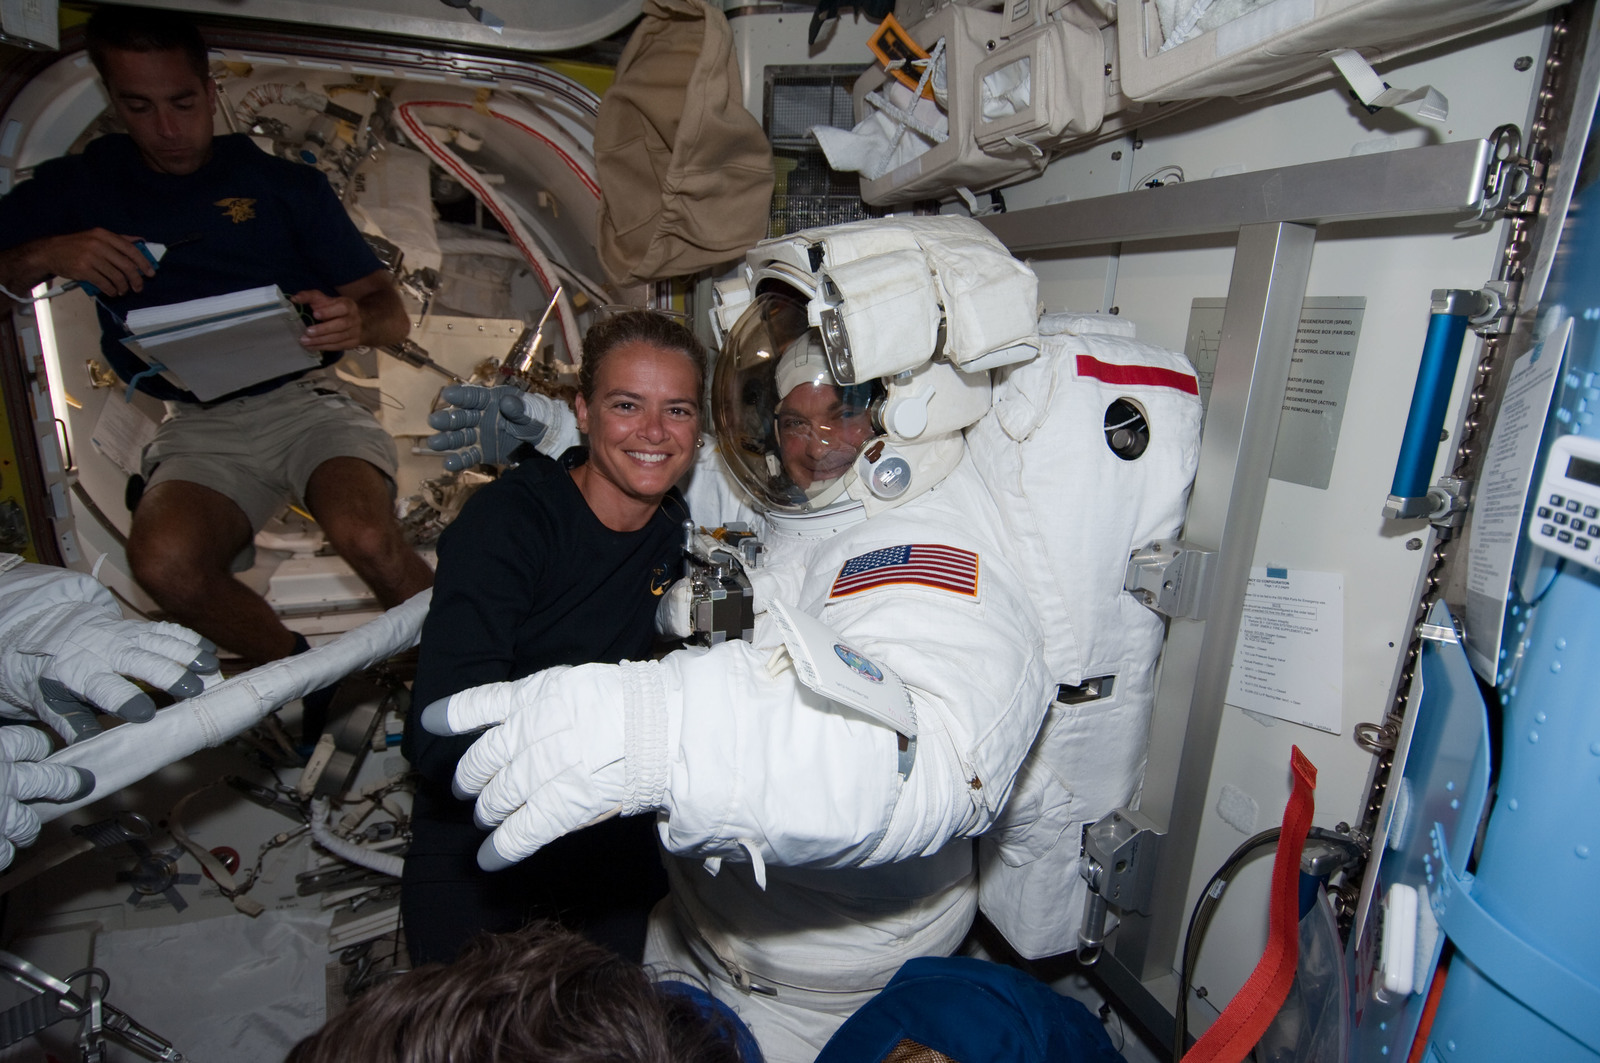 S127E007037 - STS-127 - Payette and Wolf in the A/L during STS-127 / Expedition 20 Joint Operations